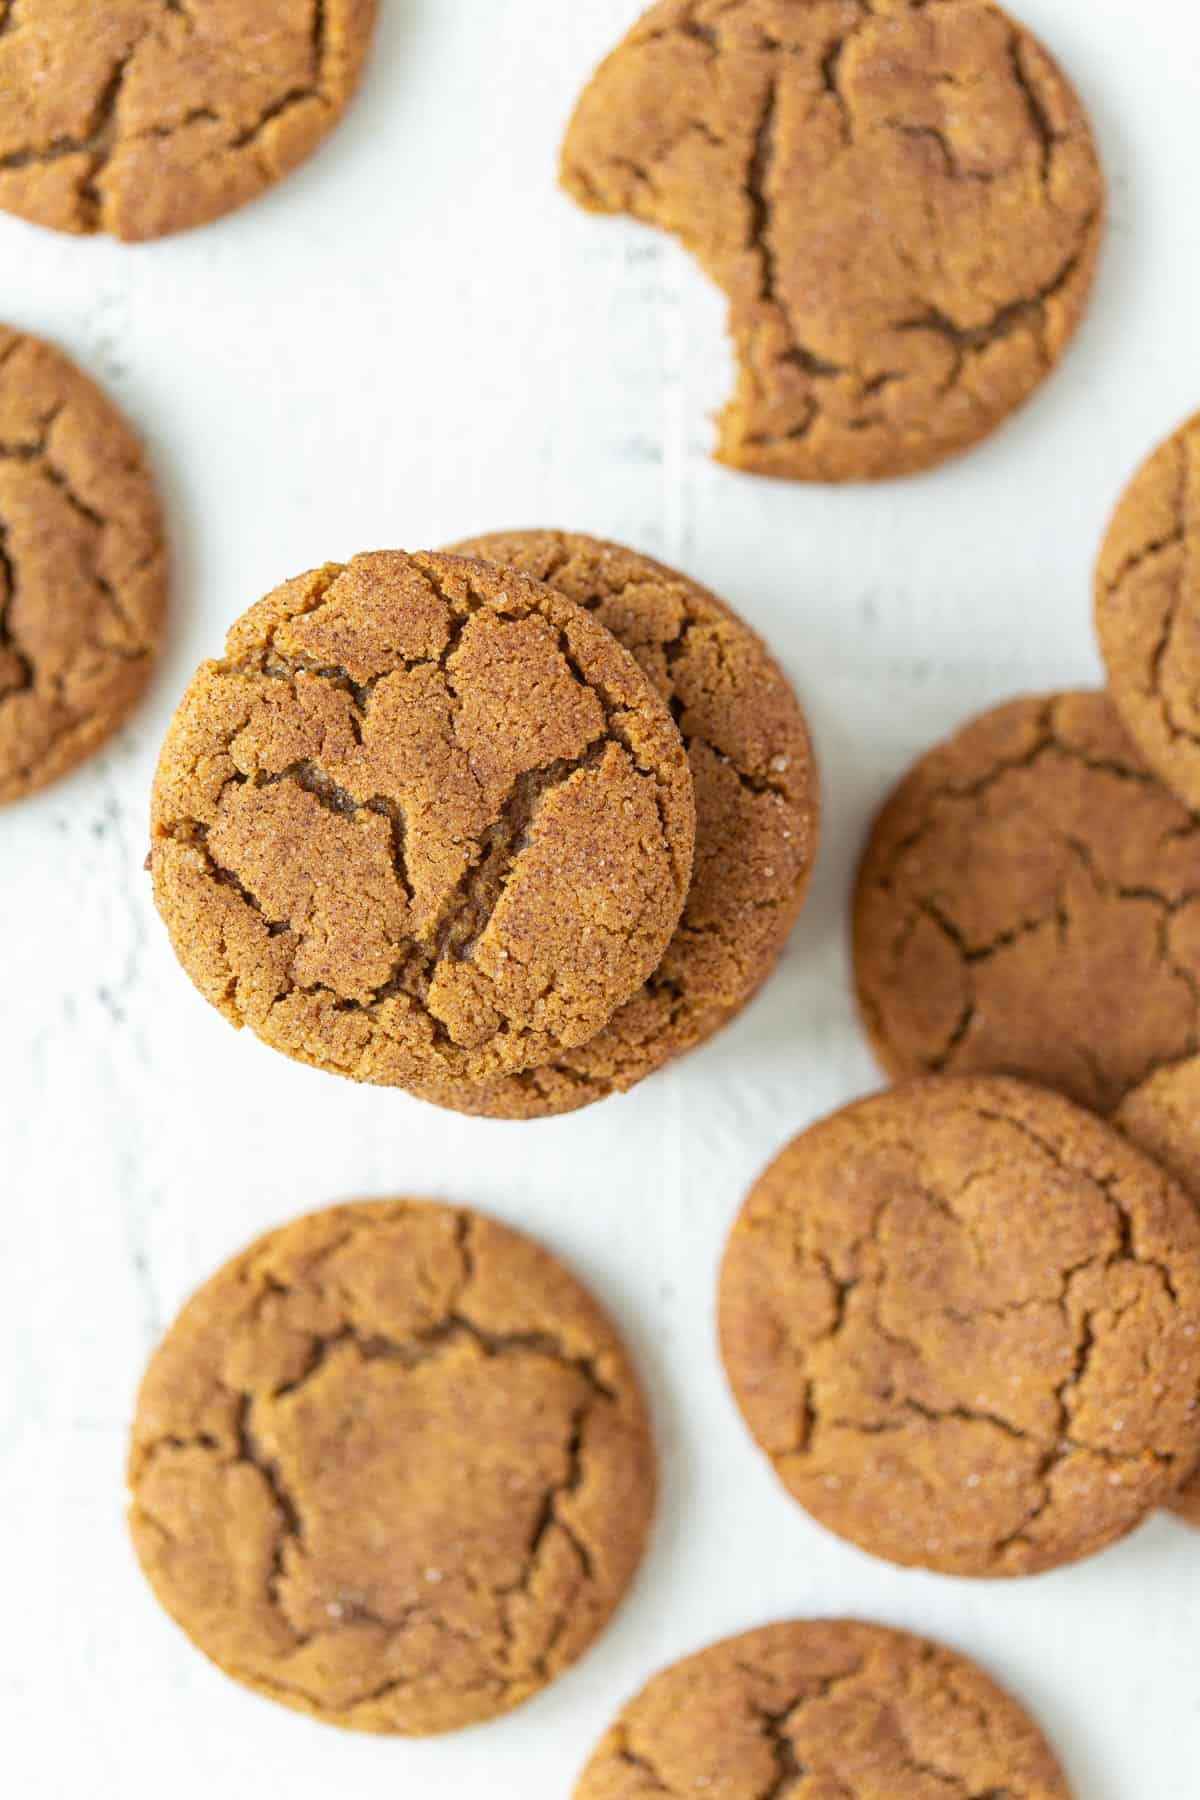 Overhead view of gingersnap cookies on a white surface.